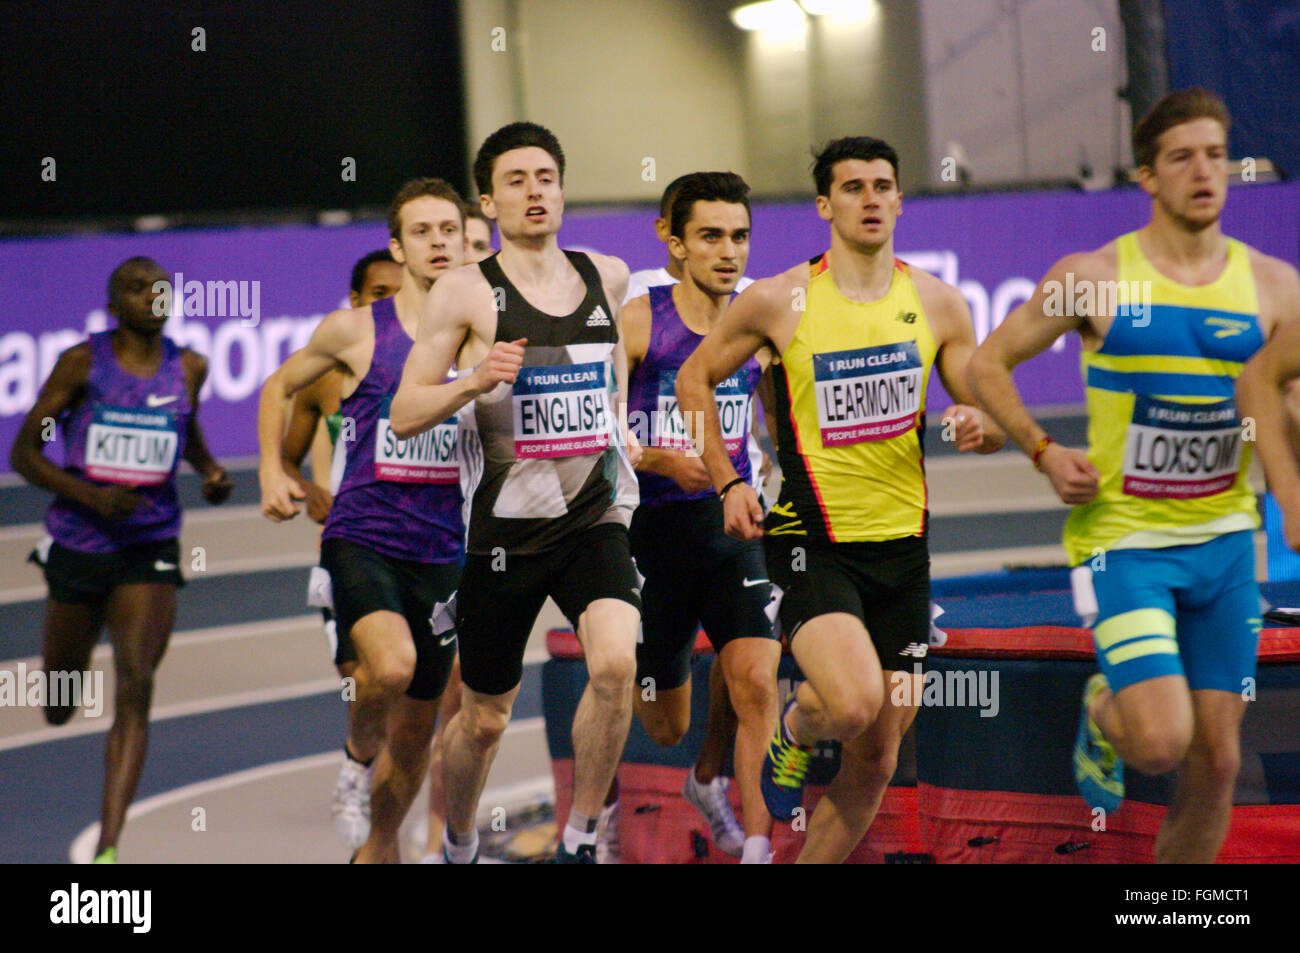 Glasgow, UK, 20 February 2016, Mark English of Ireland running on the shoulder of Guy Learmonth of Great Britain - Stock Image